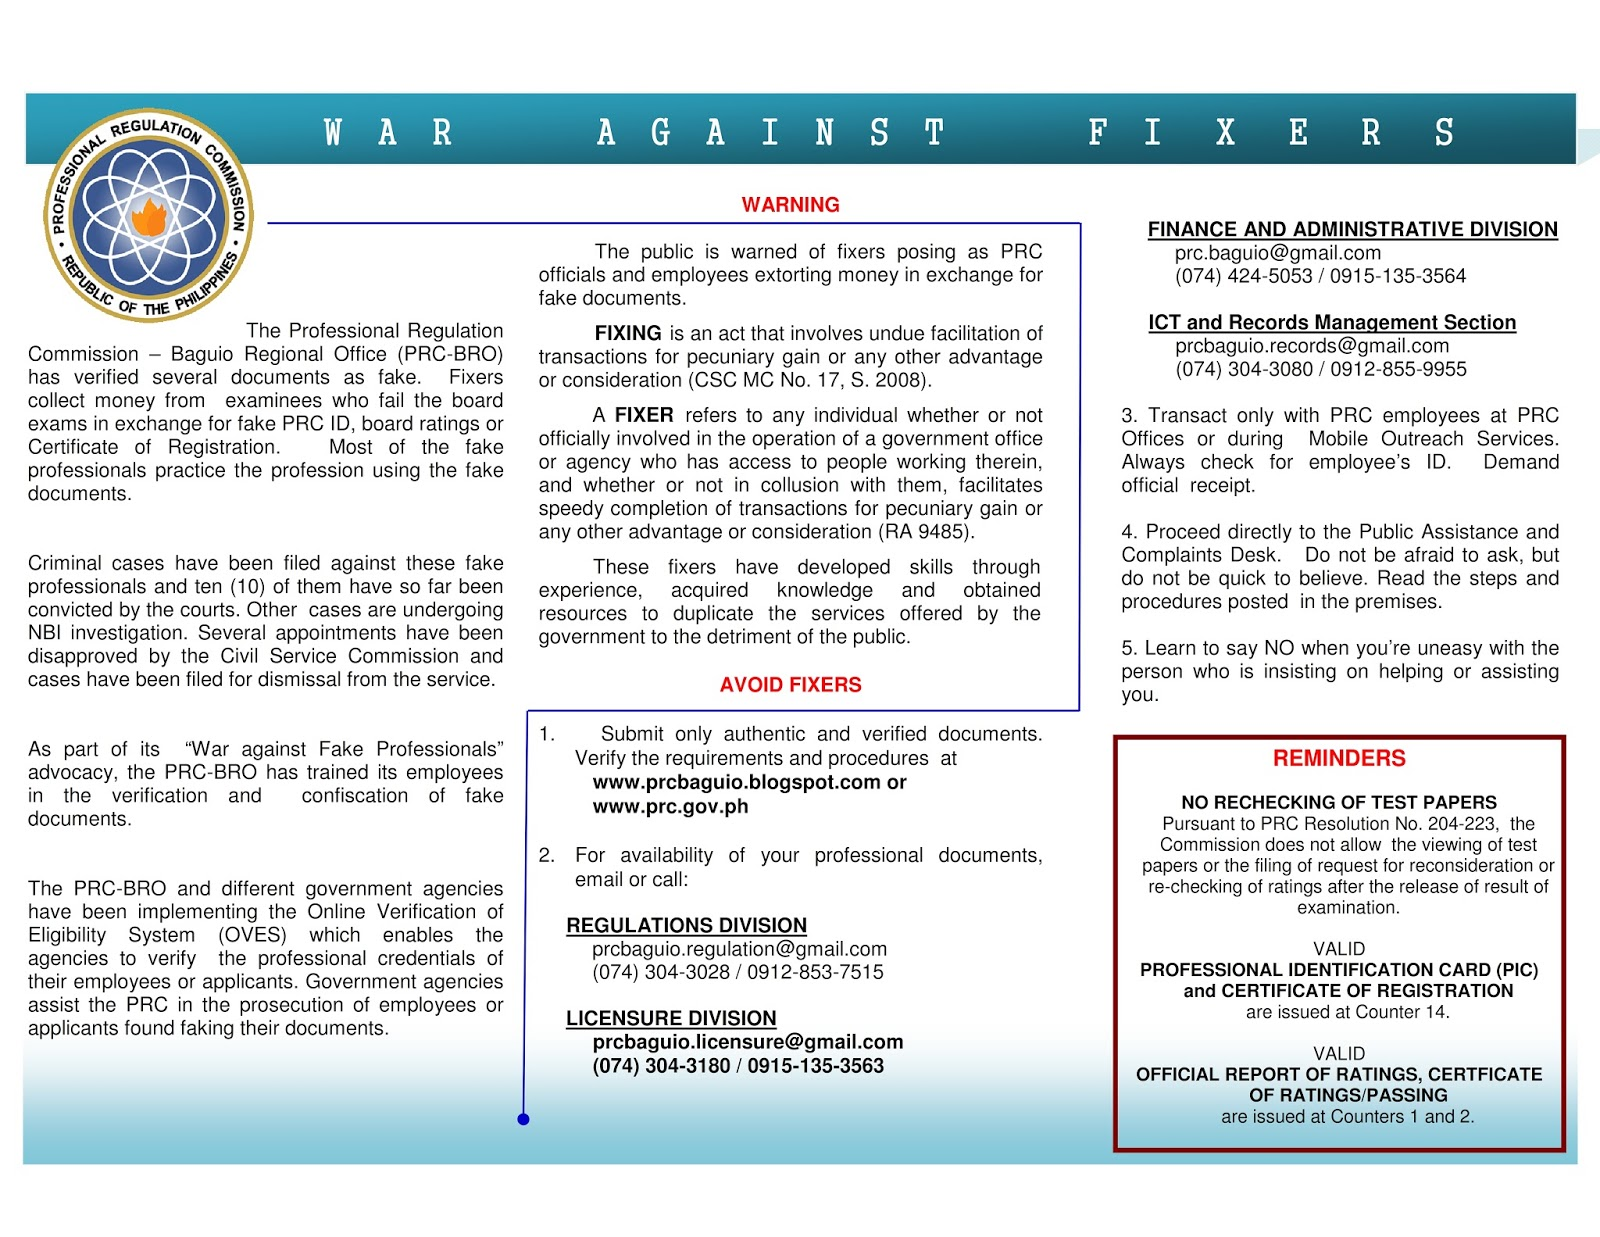 ria compliance manual template - prc baguio information site complaints